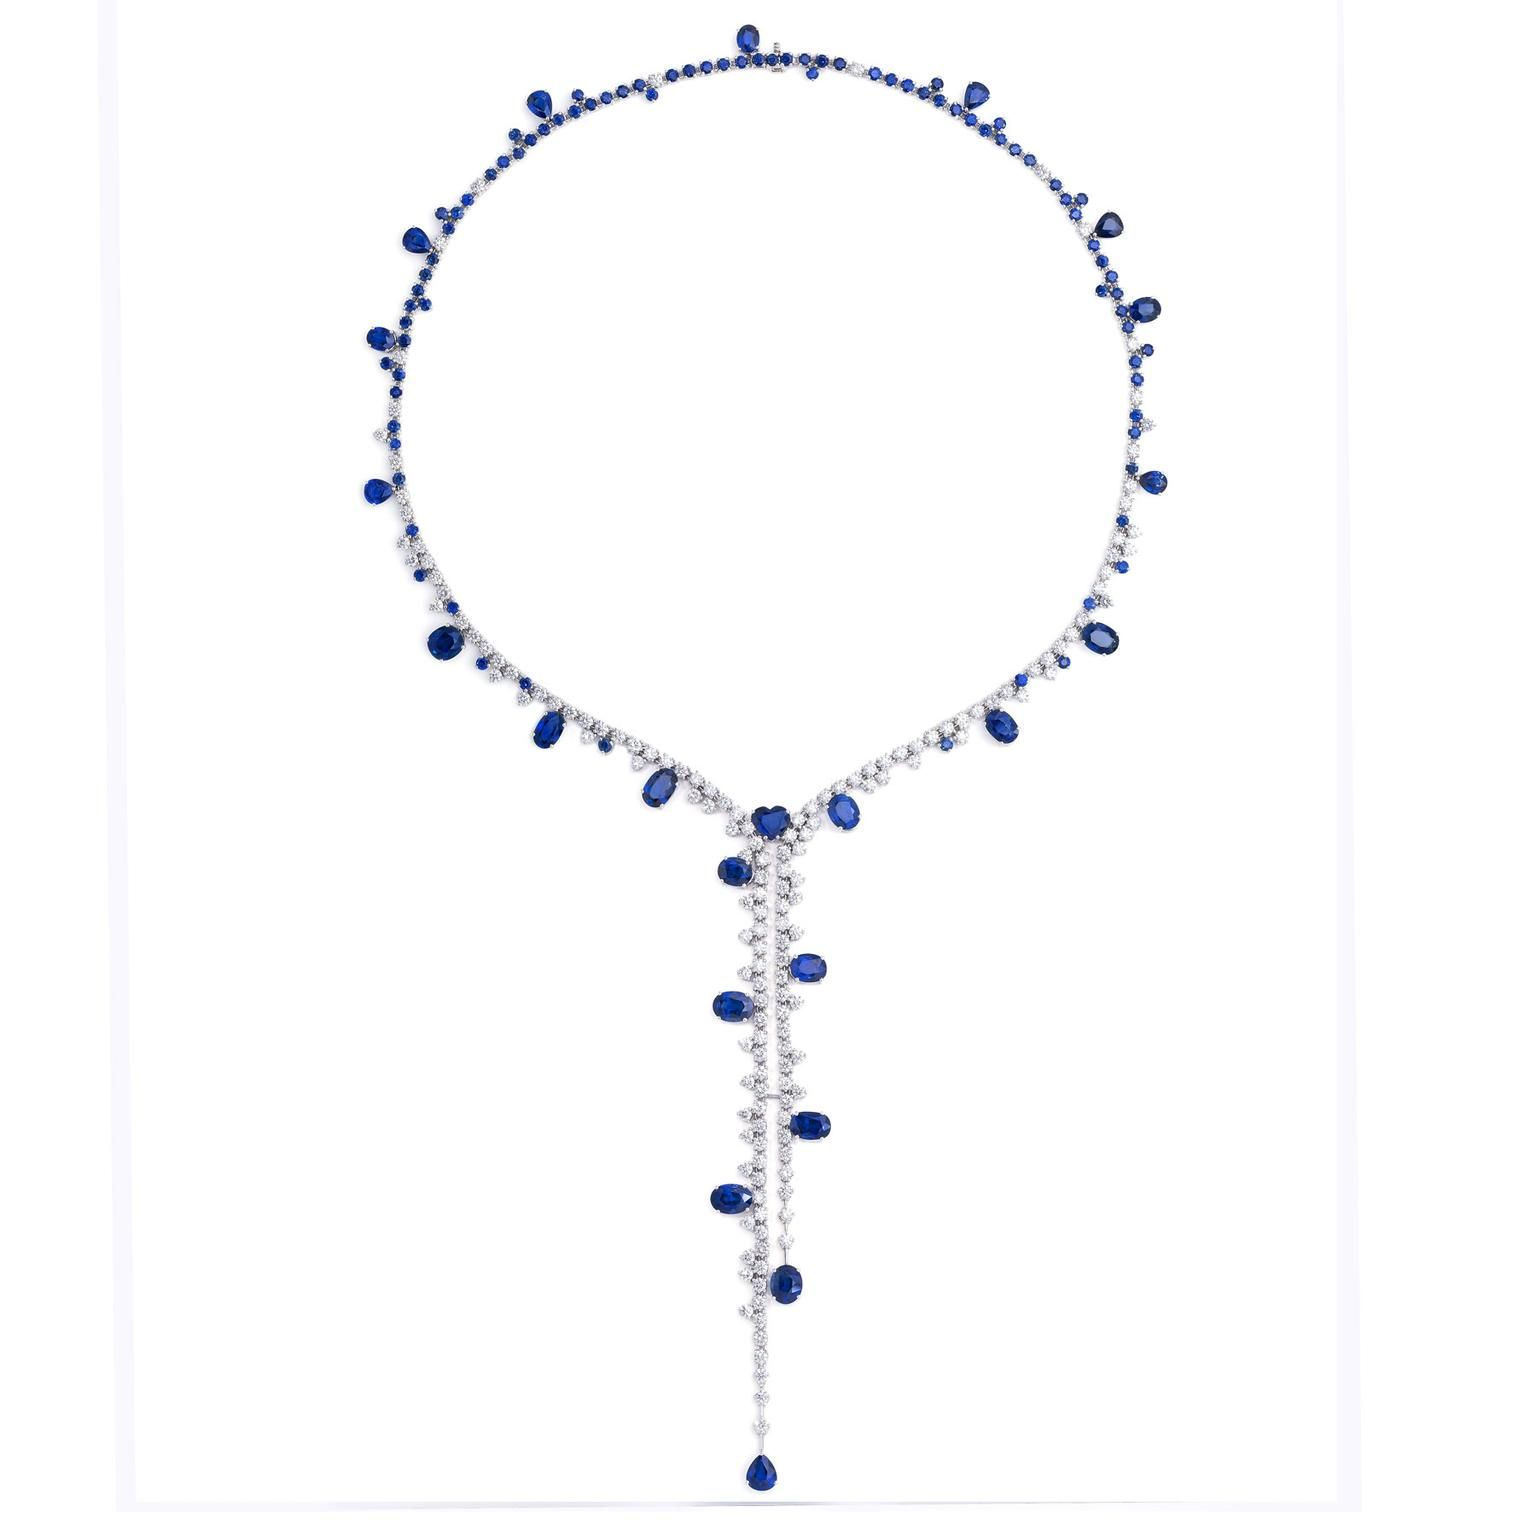 Stenzhorn's sapphire and diamond high jewellery necklace entitled Blue Divine. http://www.thejewelleryeditor.com/jewellery/article/stenzhorn-high-jewellery-myths-magic/ #jewelry